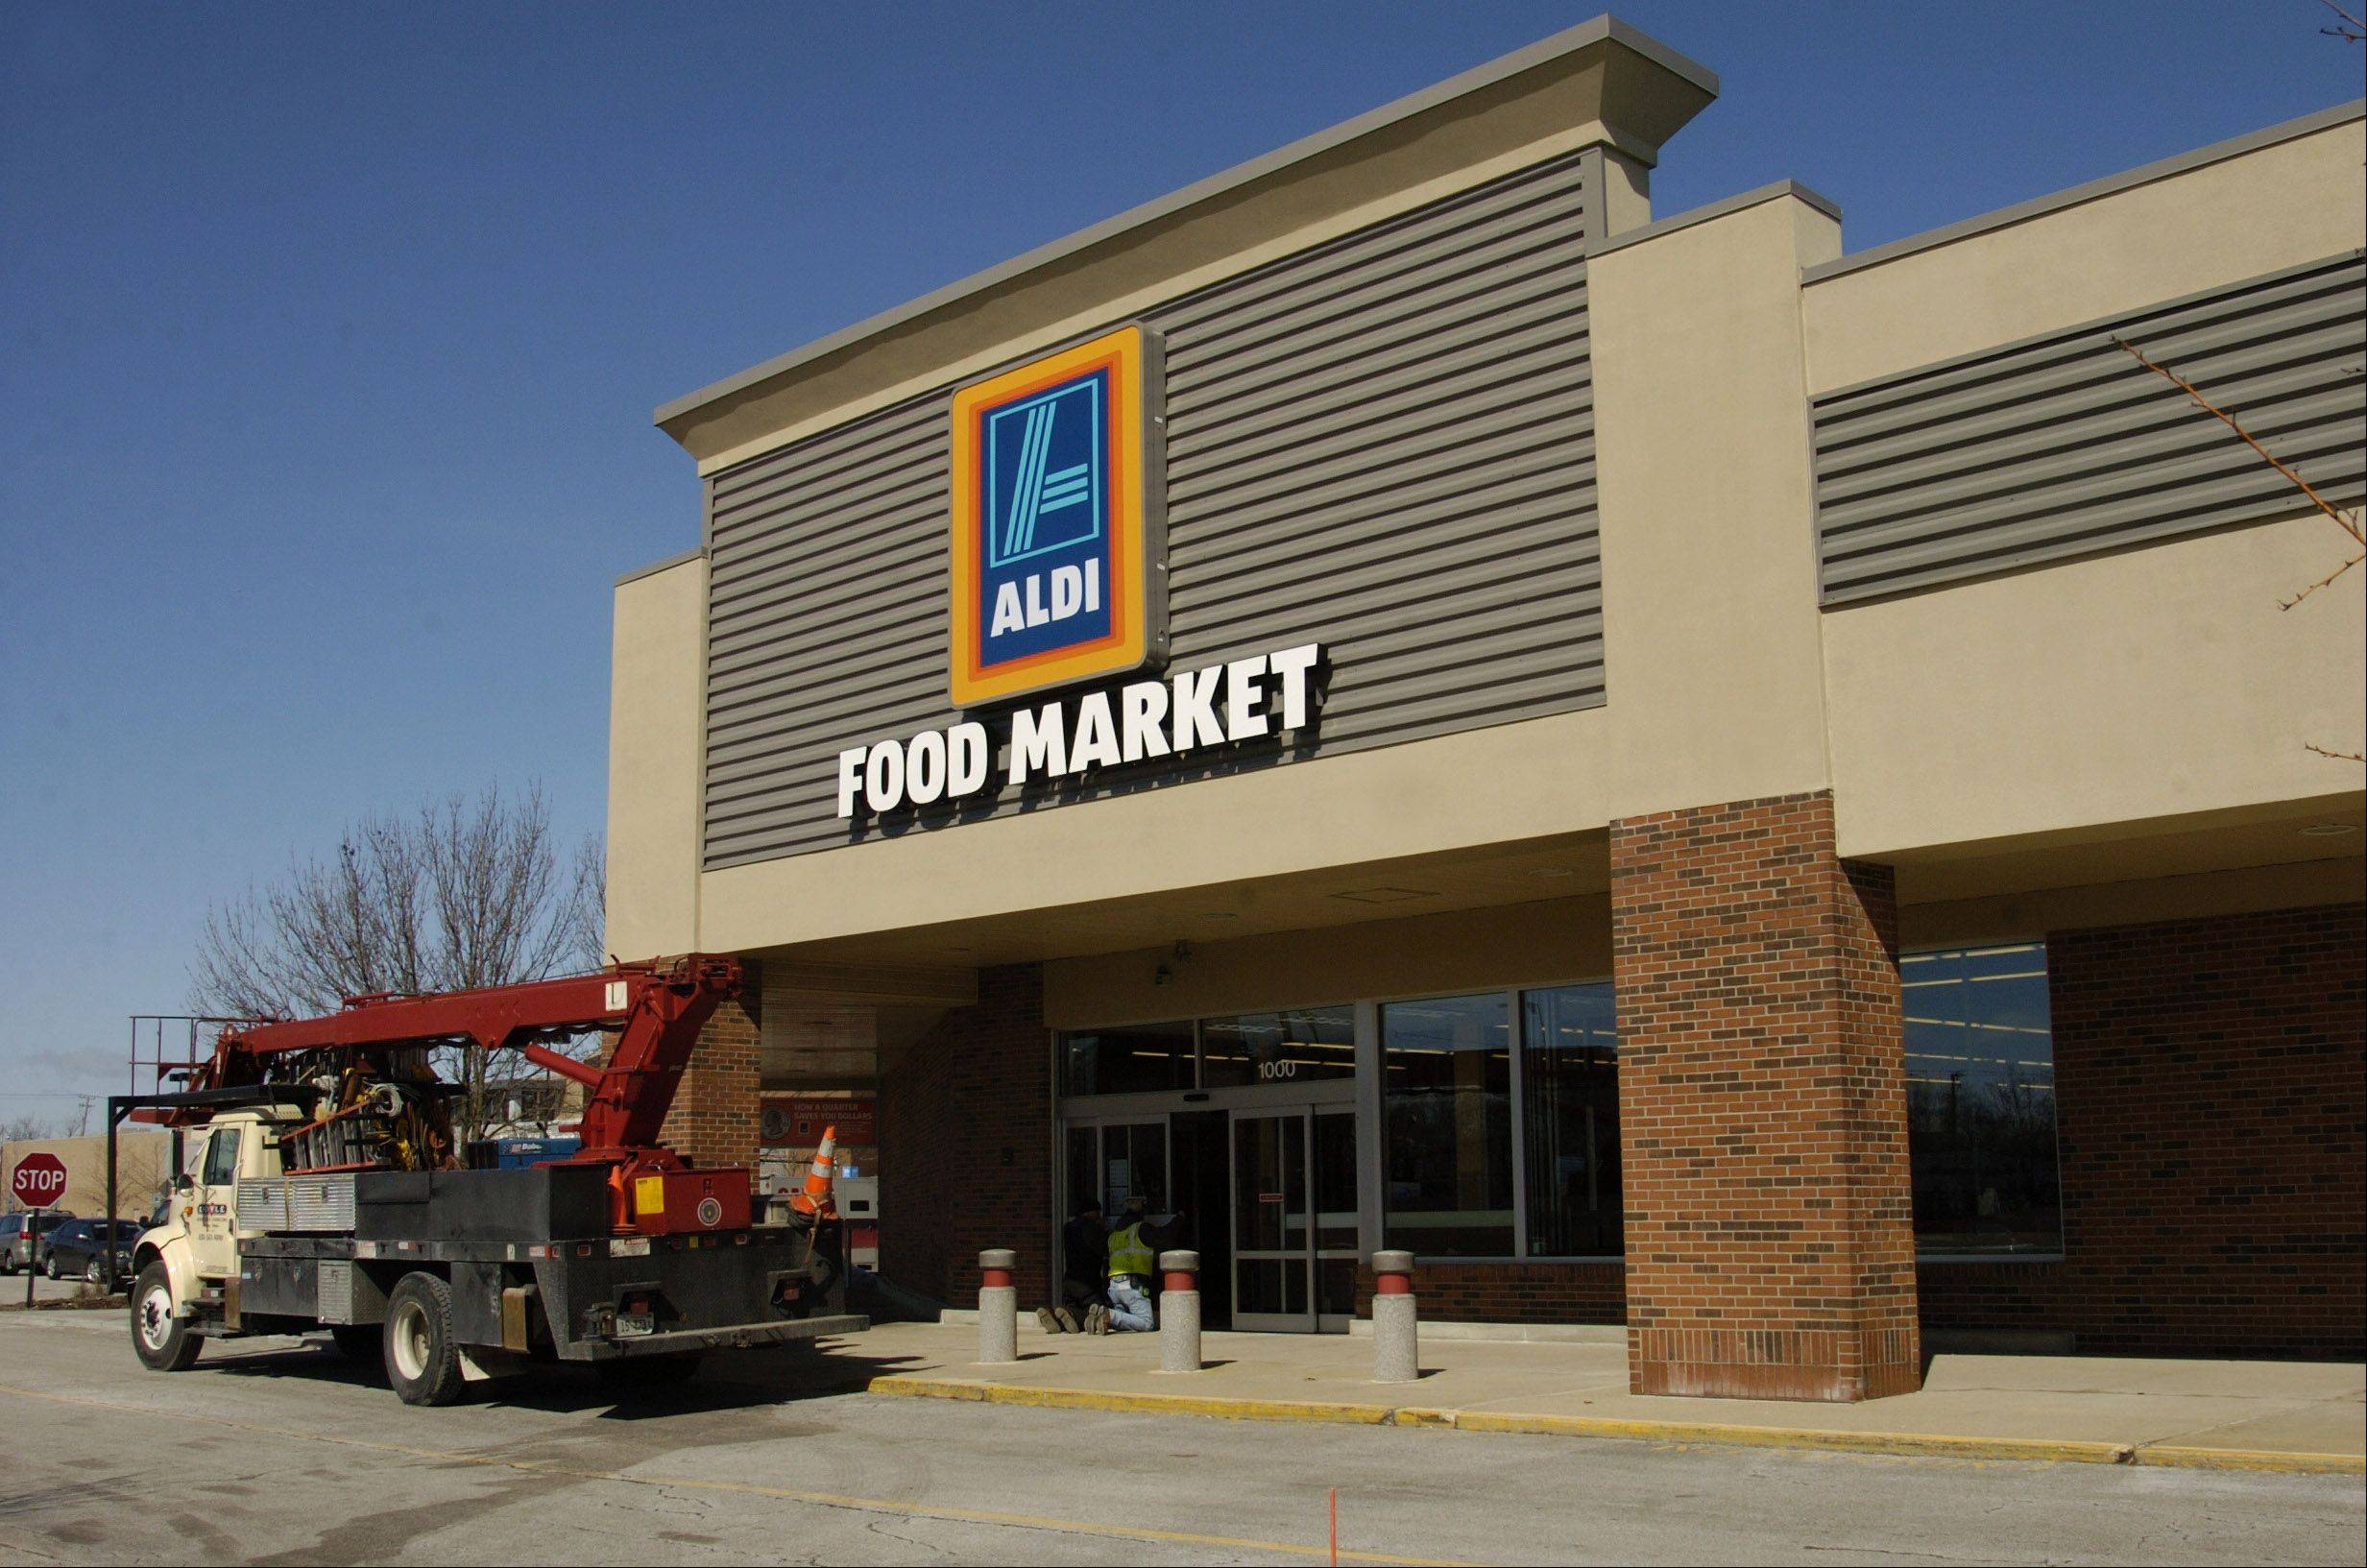 A new Aldi discount grocery store is opening in two weeks in the Mount Prospect Plaza shopping center. The planned opening will occur one day after an existing Aldi at 730 E. Rand Road is scheduled to close.